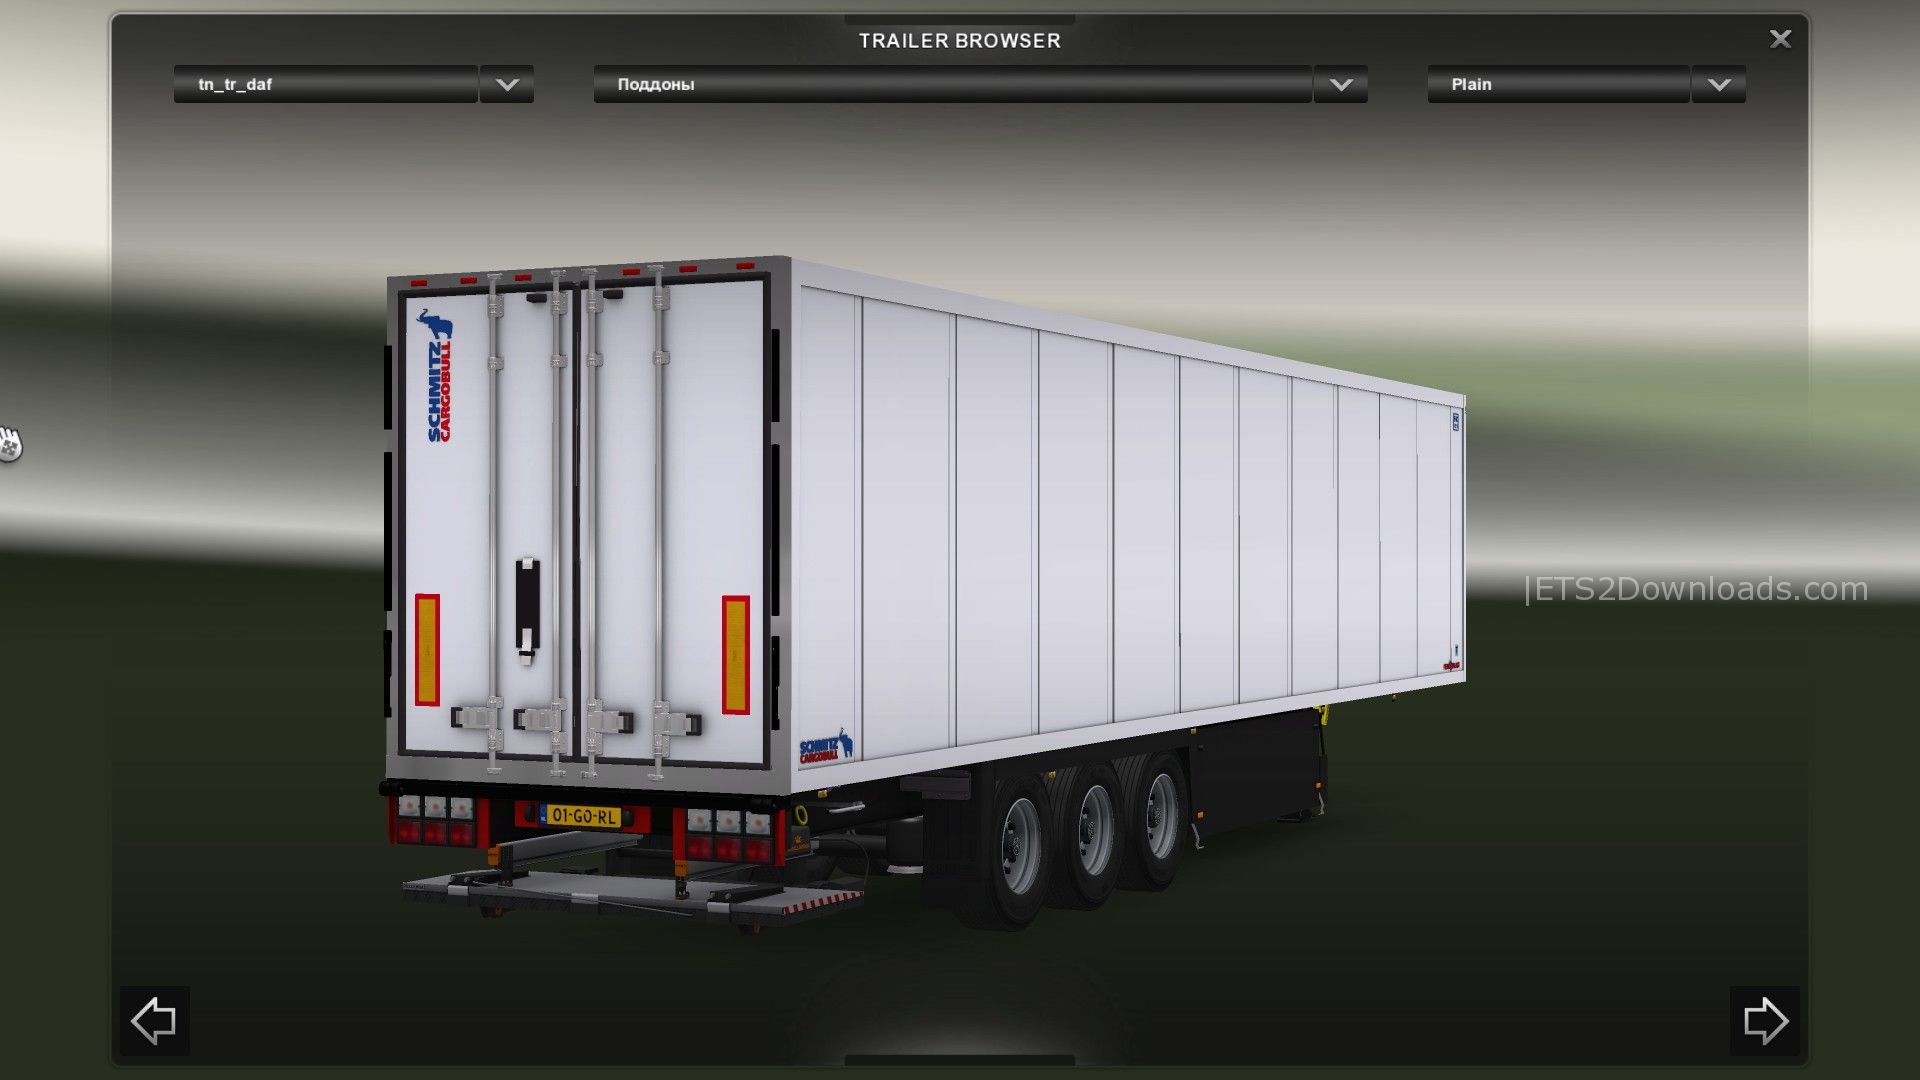 How to install ats mods mod for american truck simulator ats - Daf Xf 105 Ssc Ets 2 Mods Ets2downloads